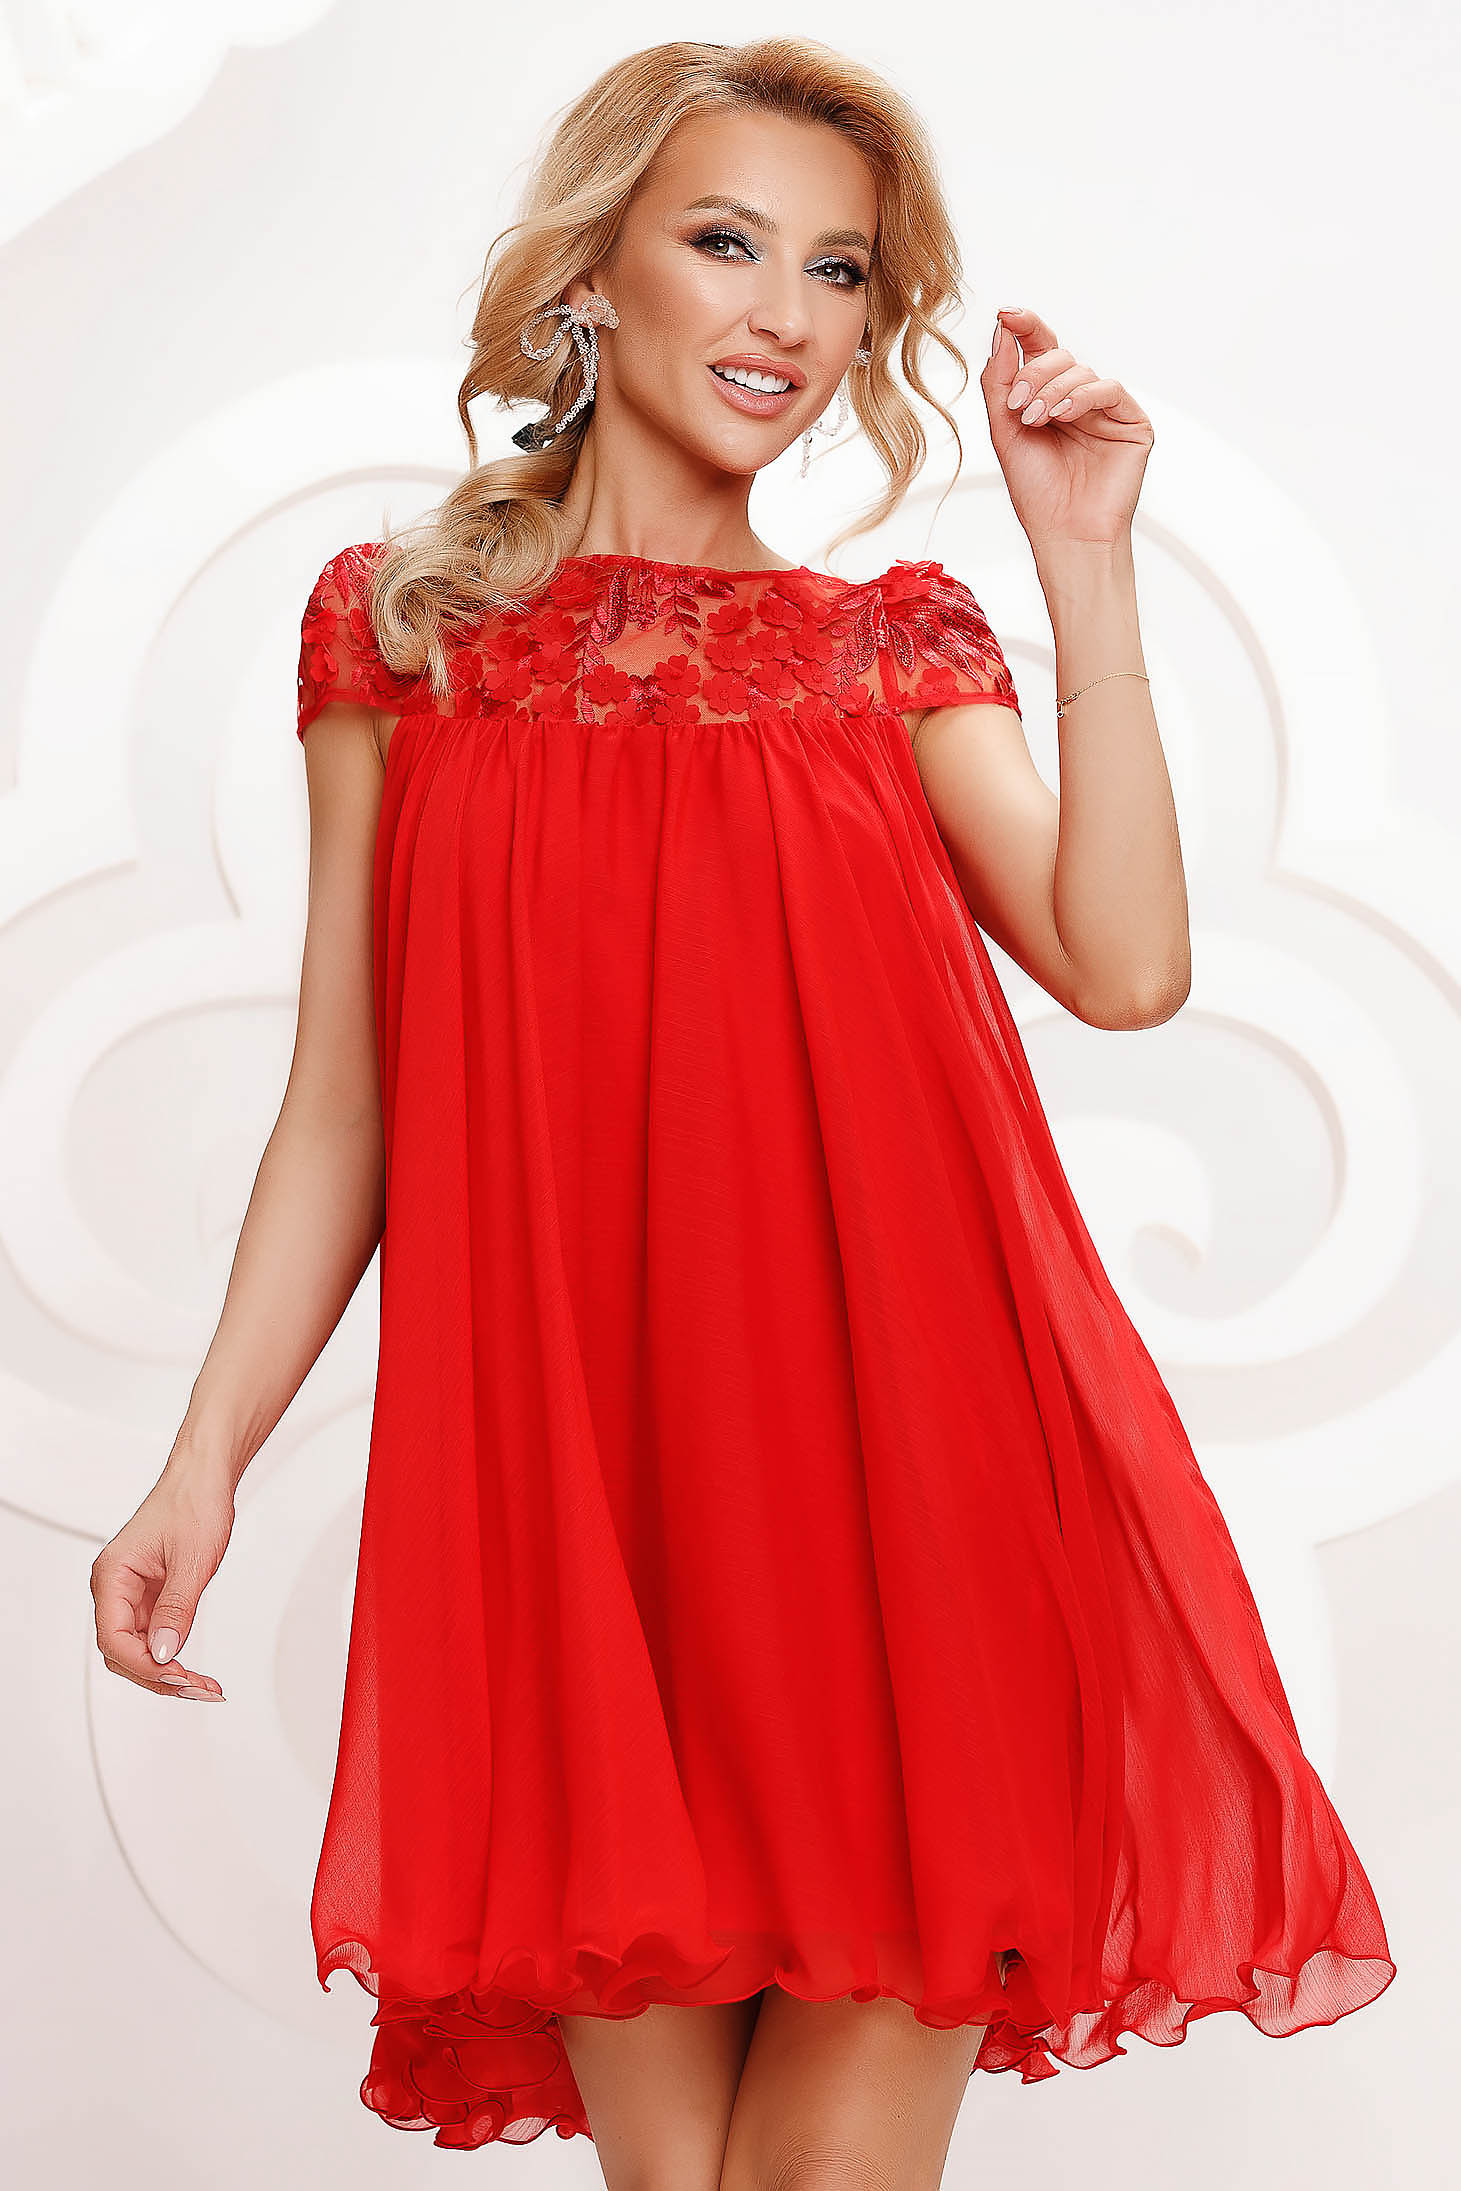 Red dress from veil fabric occasional with lace details with crystal embellished details loose fit